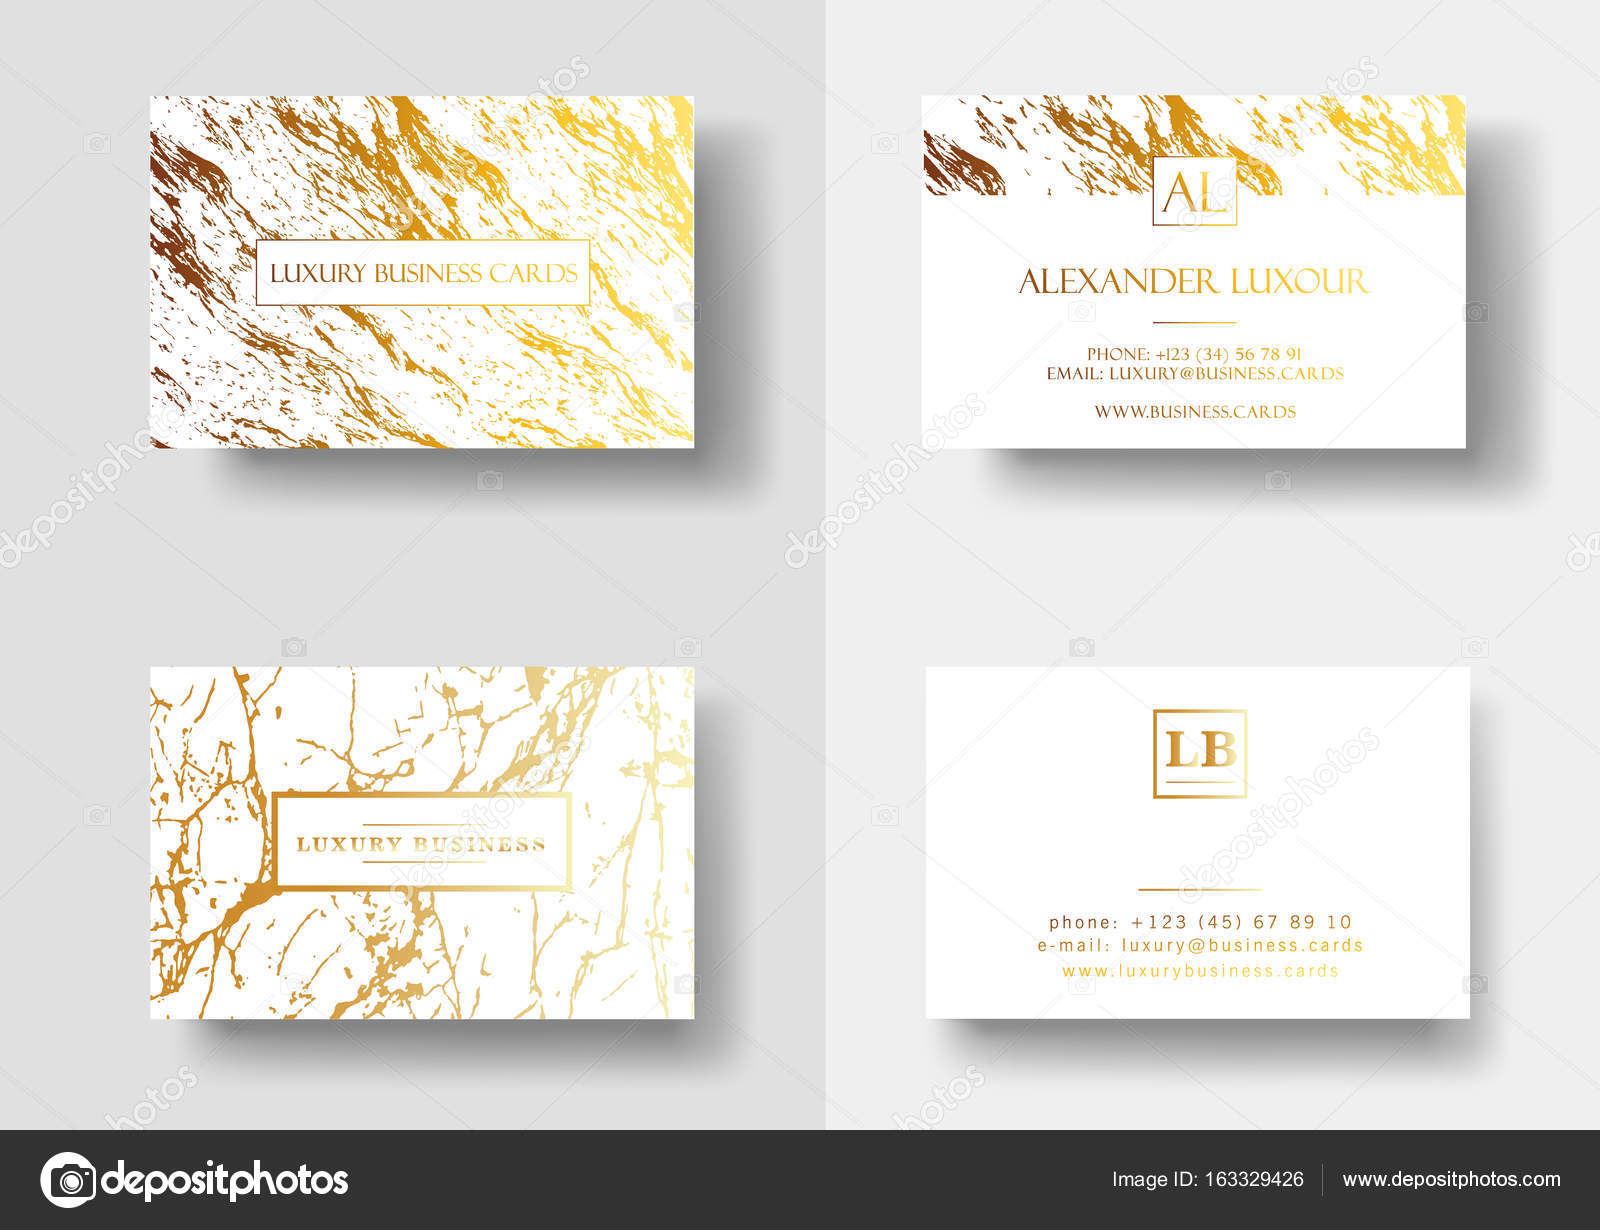 Elegant Business Cards With Marble Texture And Gold Detail Vector Template Banner Or Invitation Golden Foil Details On White Background